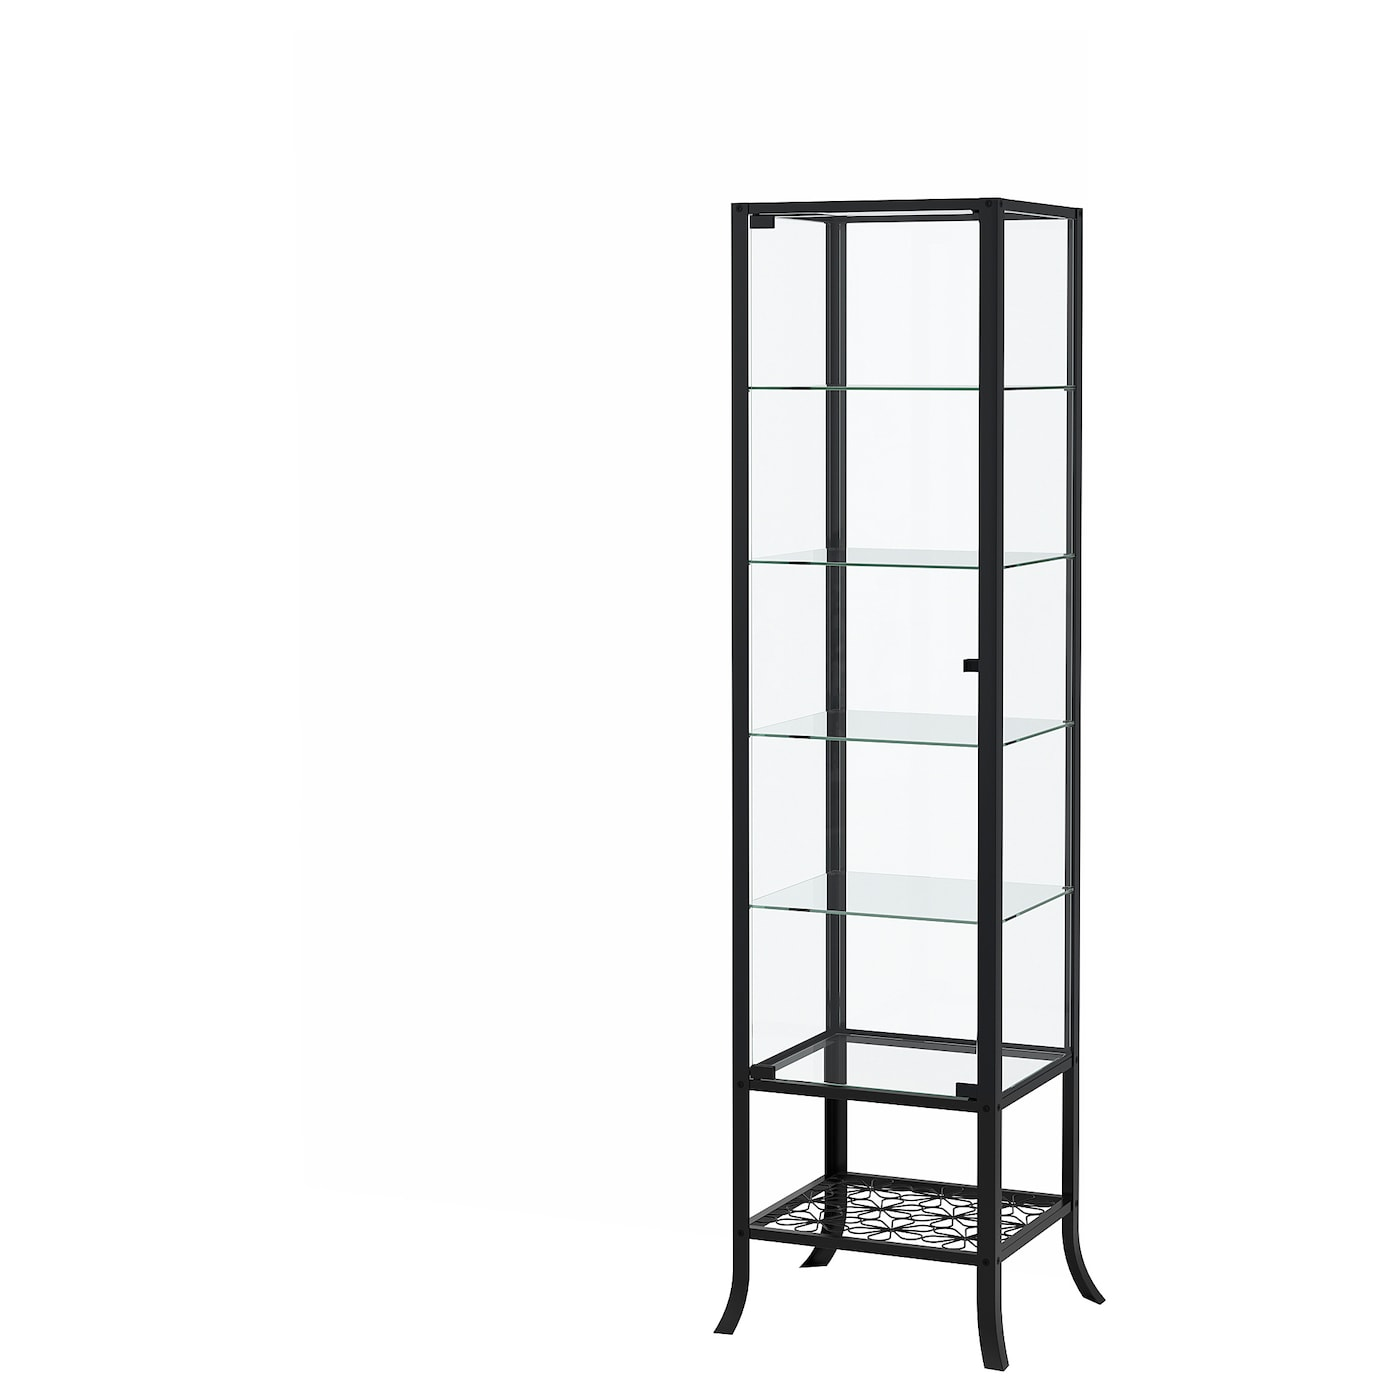 IKEA KLINGSBO glass-door cabinet The accompanying lock allows you to keep your belongings safe.